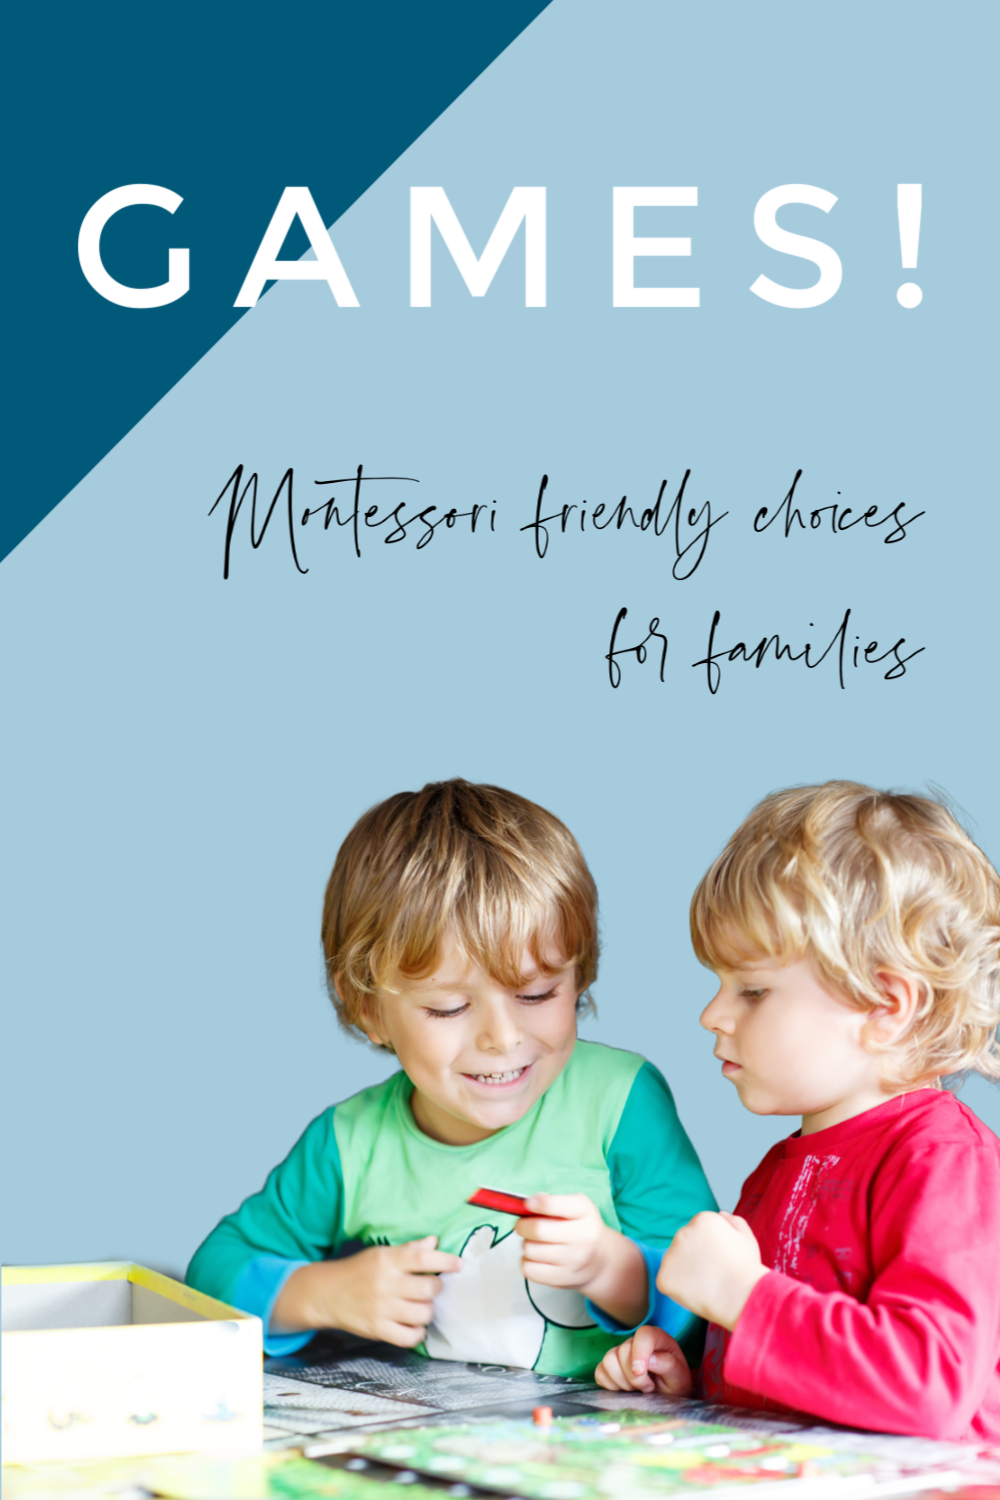 Games are a fun activity for children in a Montessori family. In this Montessori parenting podcast we discuss our favorite games for a variety of ages